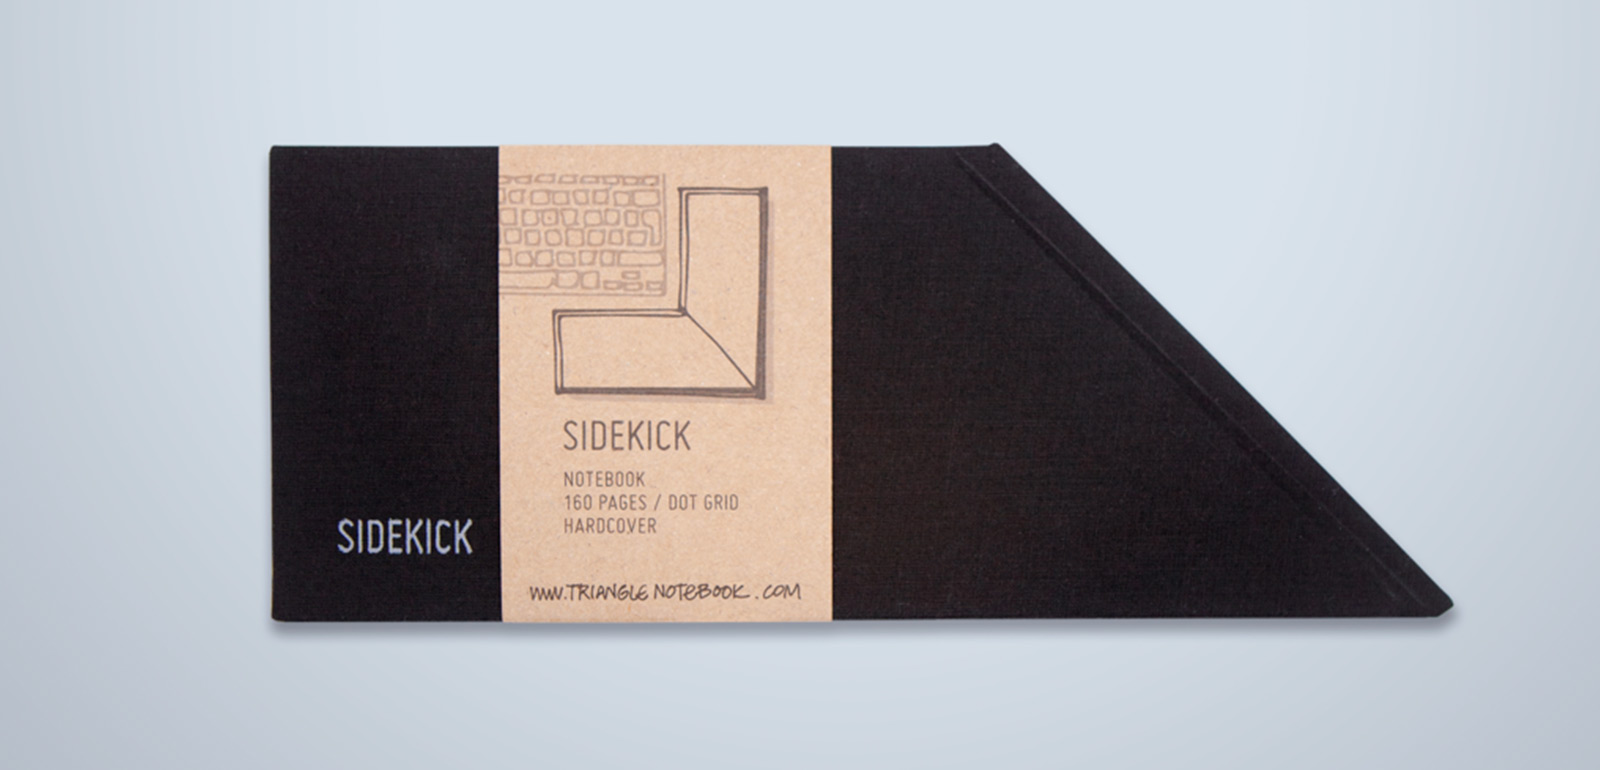 Sidekick Notebook